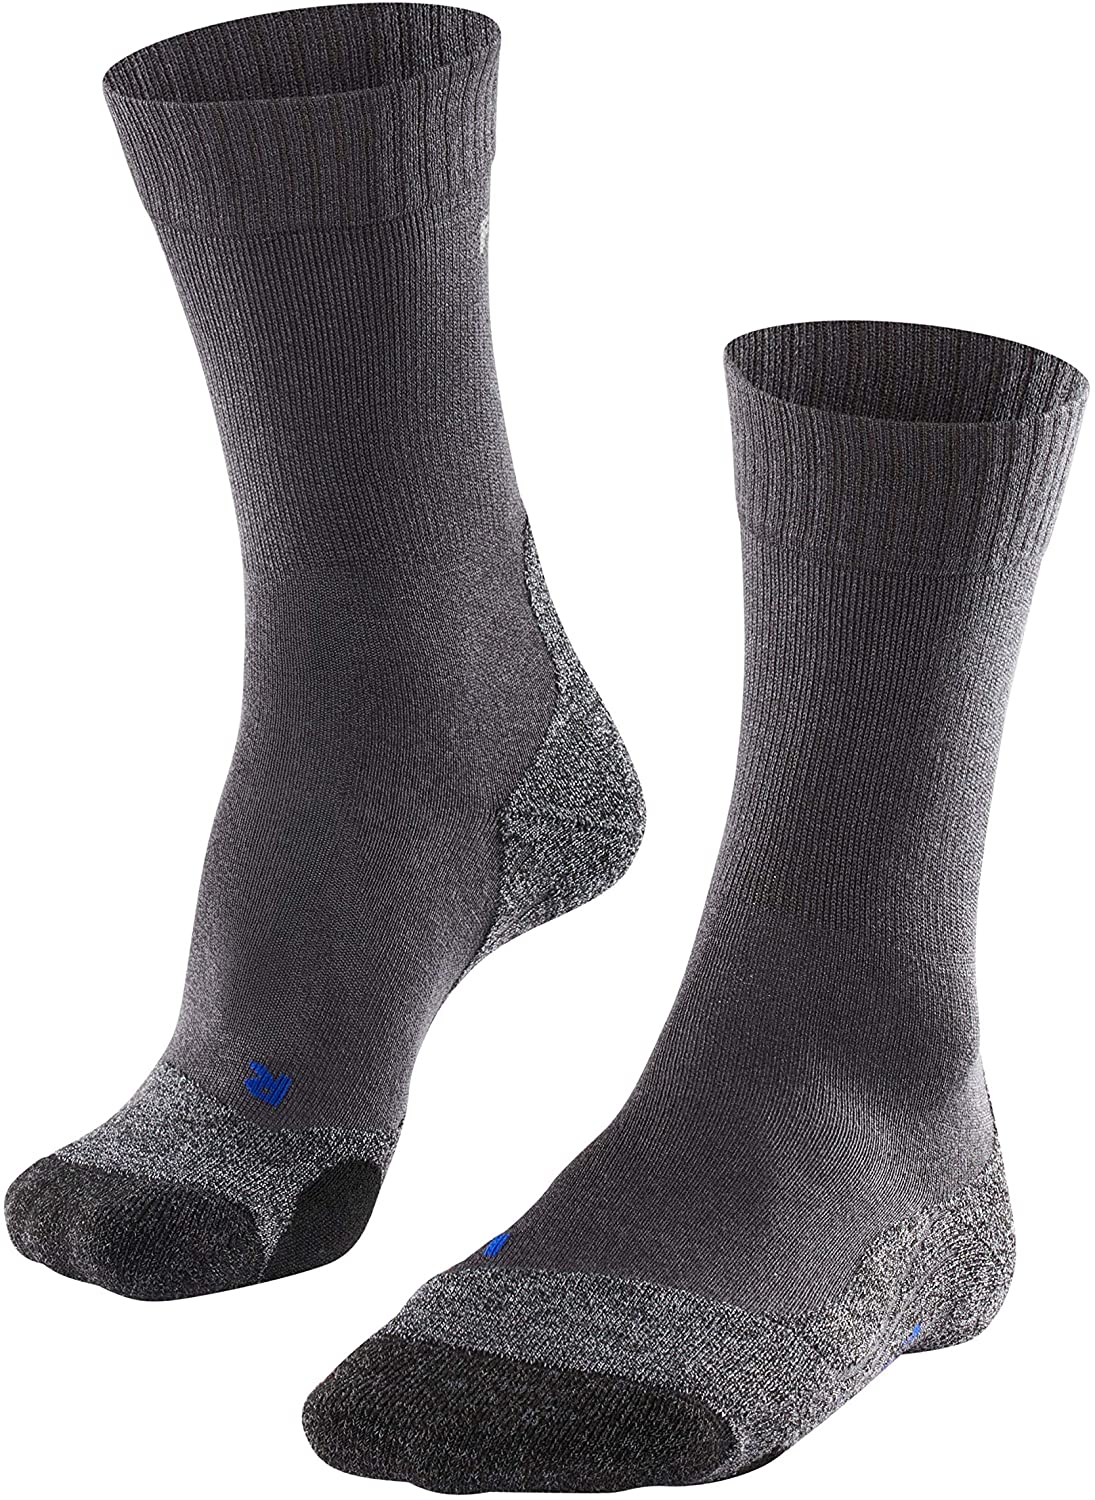 FALKE mens Hiking Sock